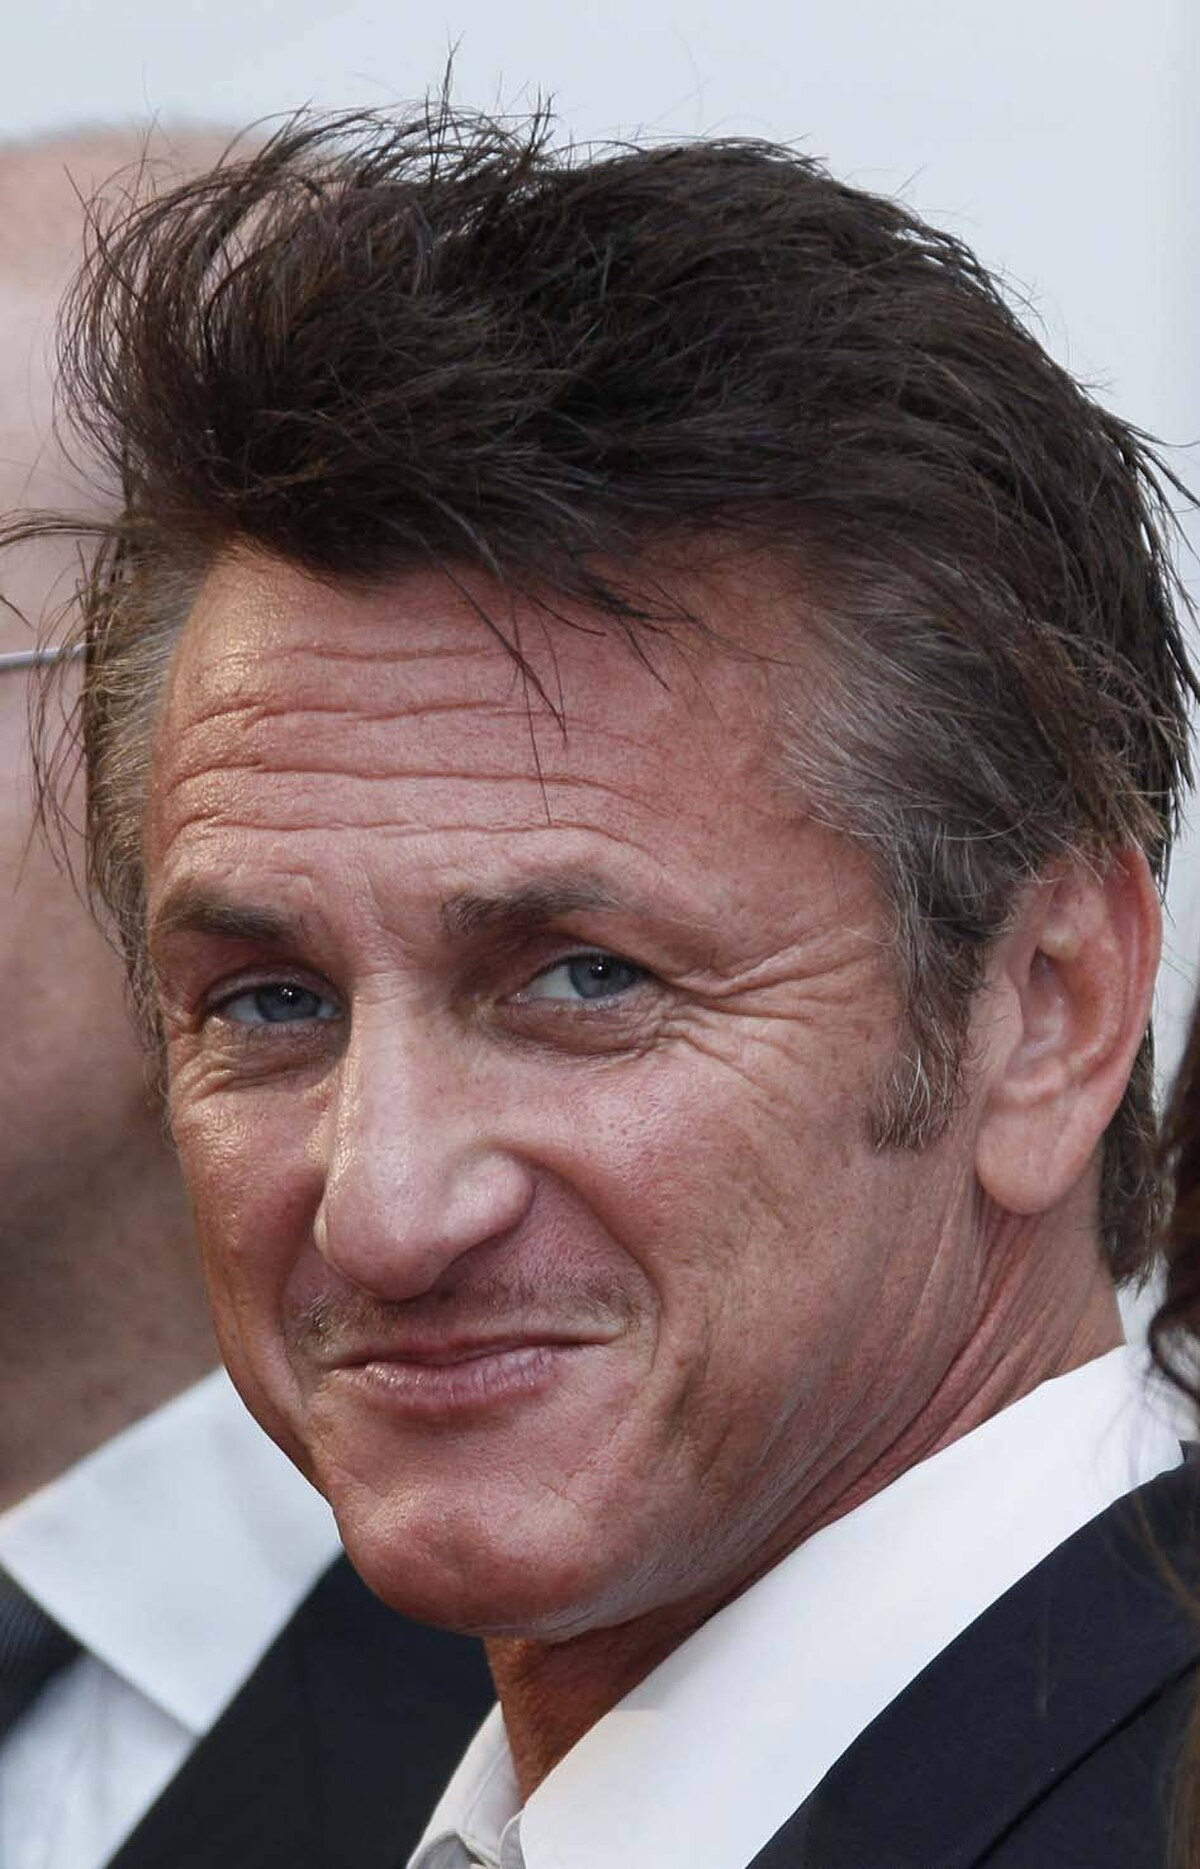 Sean Penn arrives for a dinner organised by the Cinema For Peace foundation at the Cannes Film Festival on Wednesday.